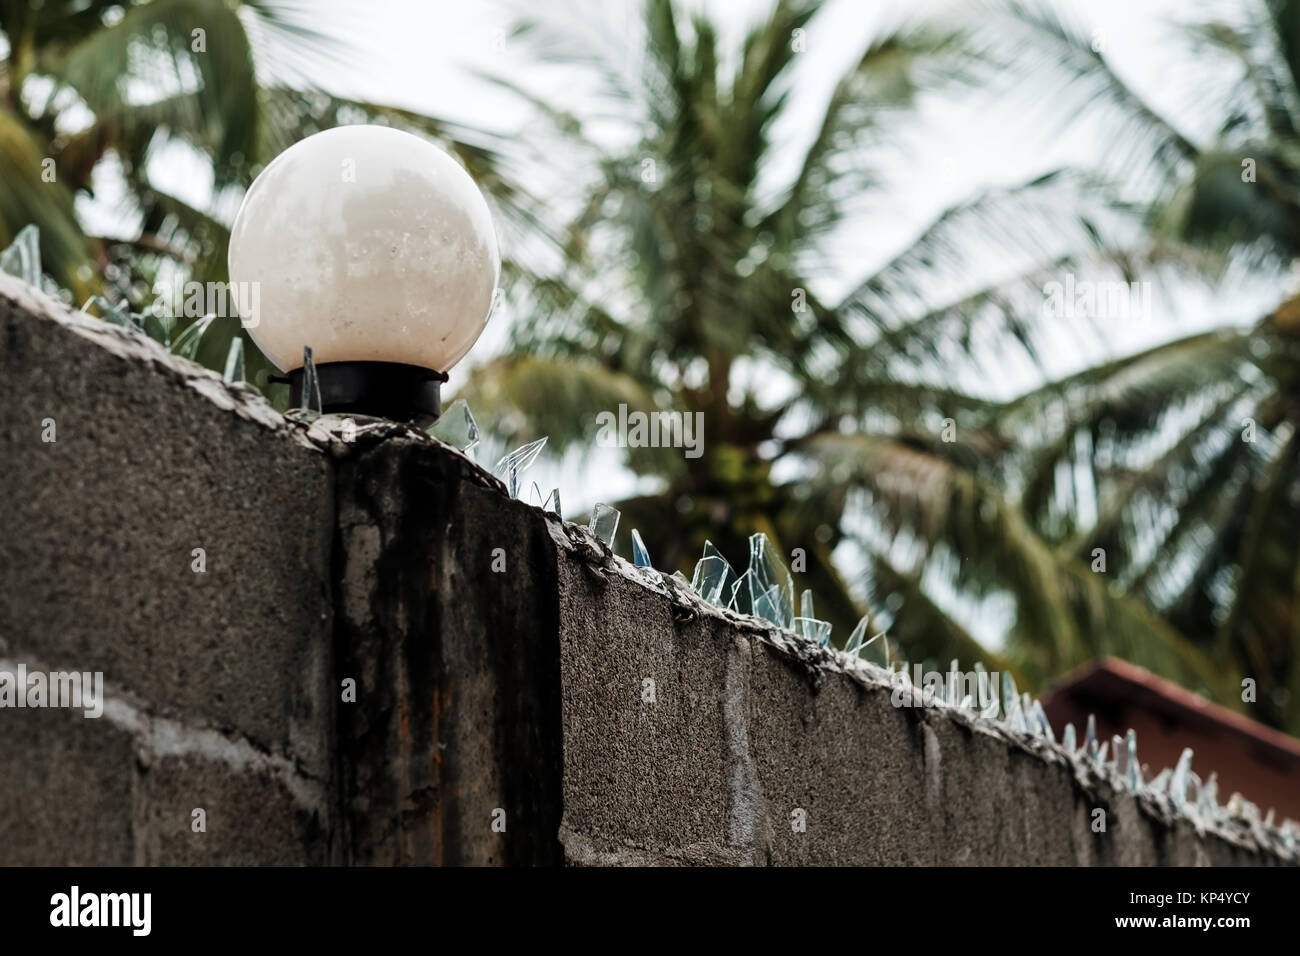 Fence in the Vietnamese village. Sharp glass fragments, like protection from thieves - Stock Image